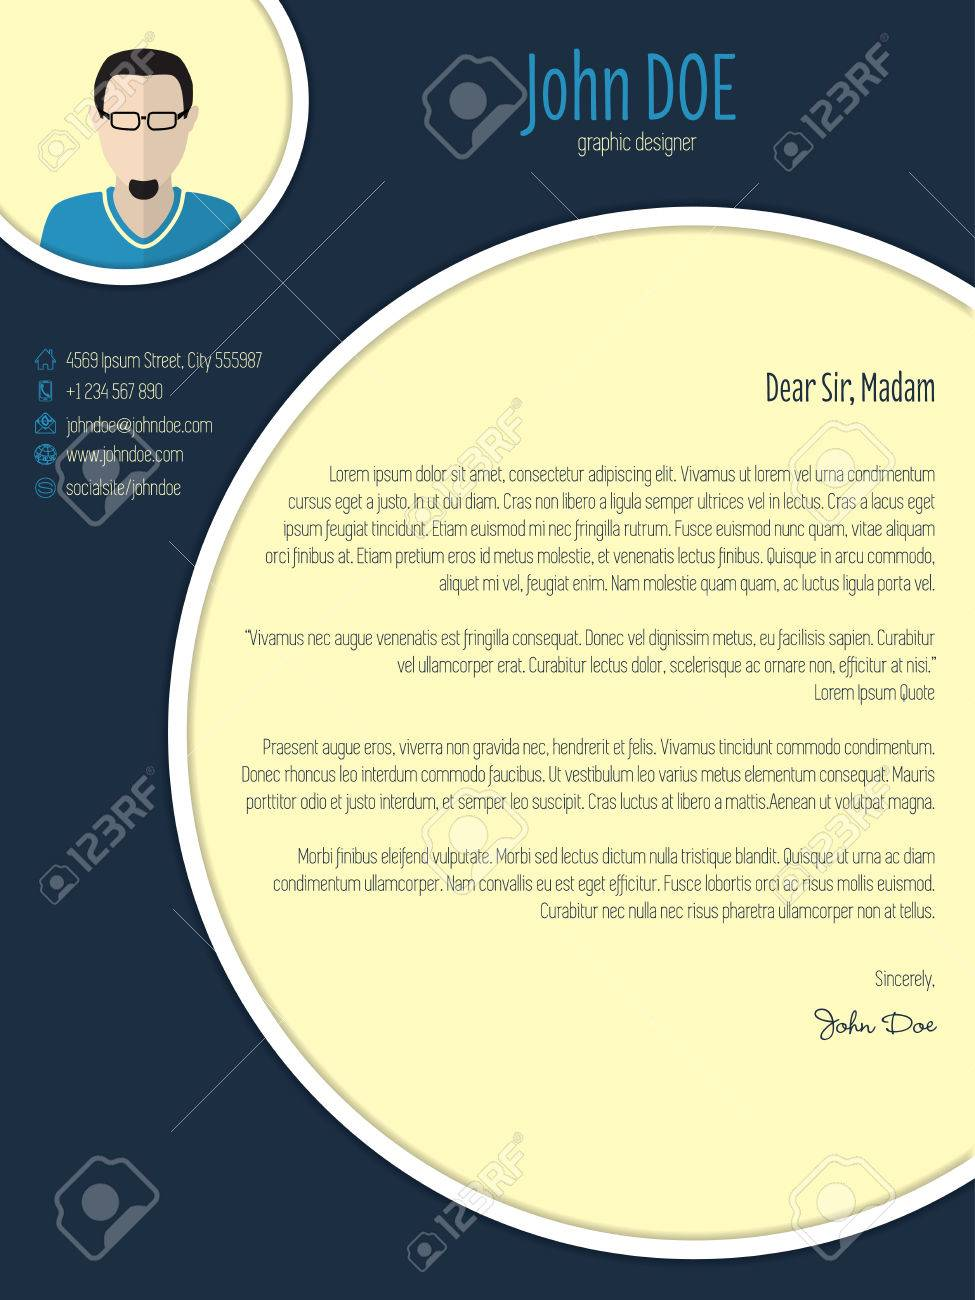 cool new modern cover letter template with circle elements stock vector 37630938